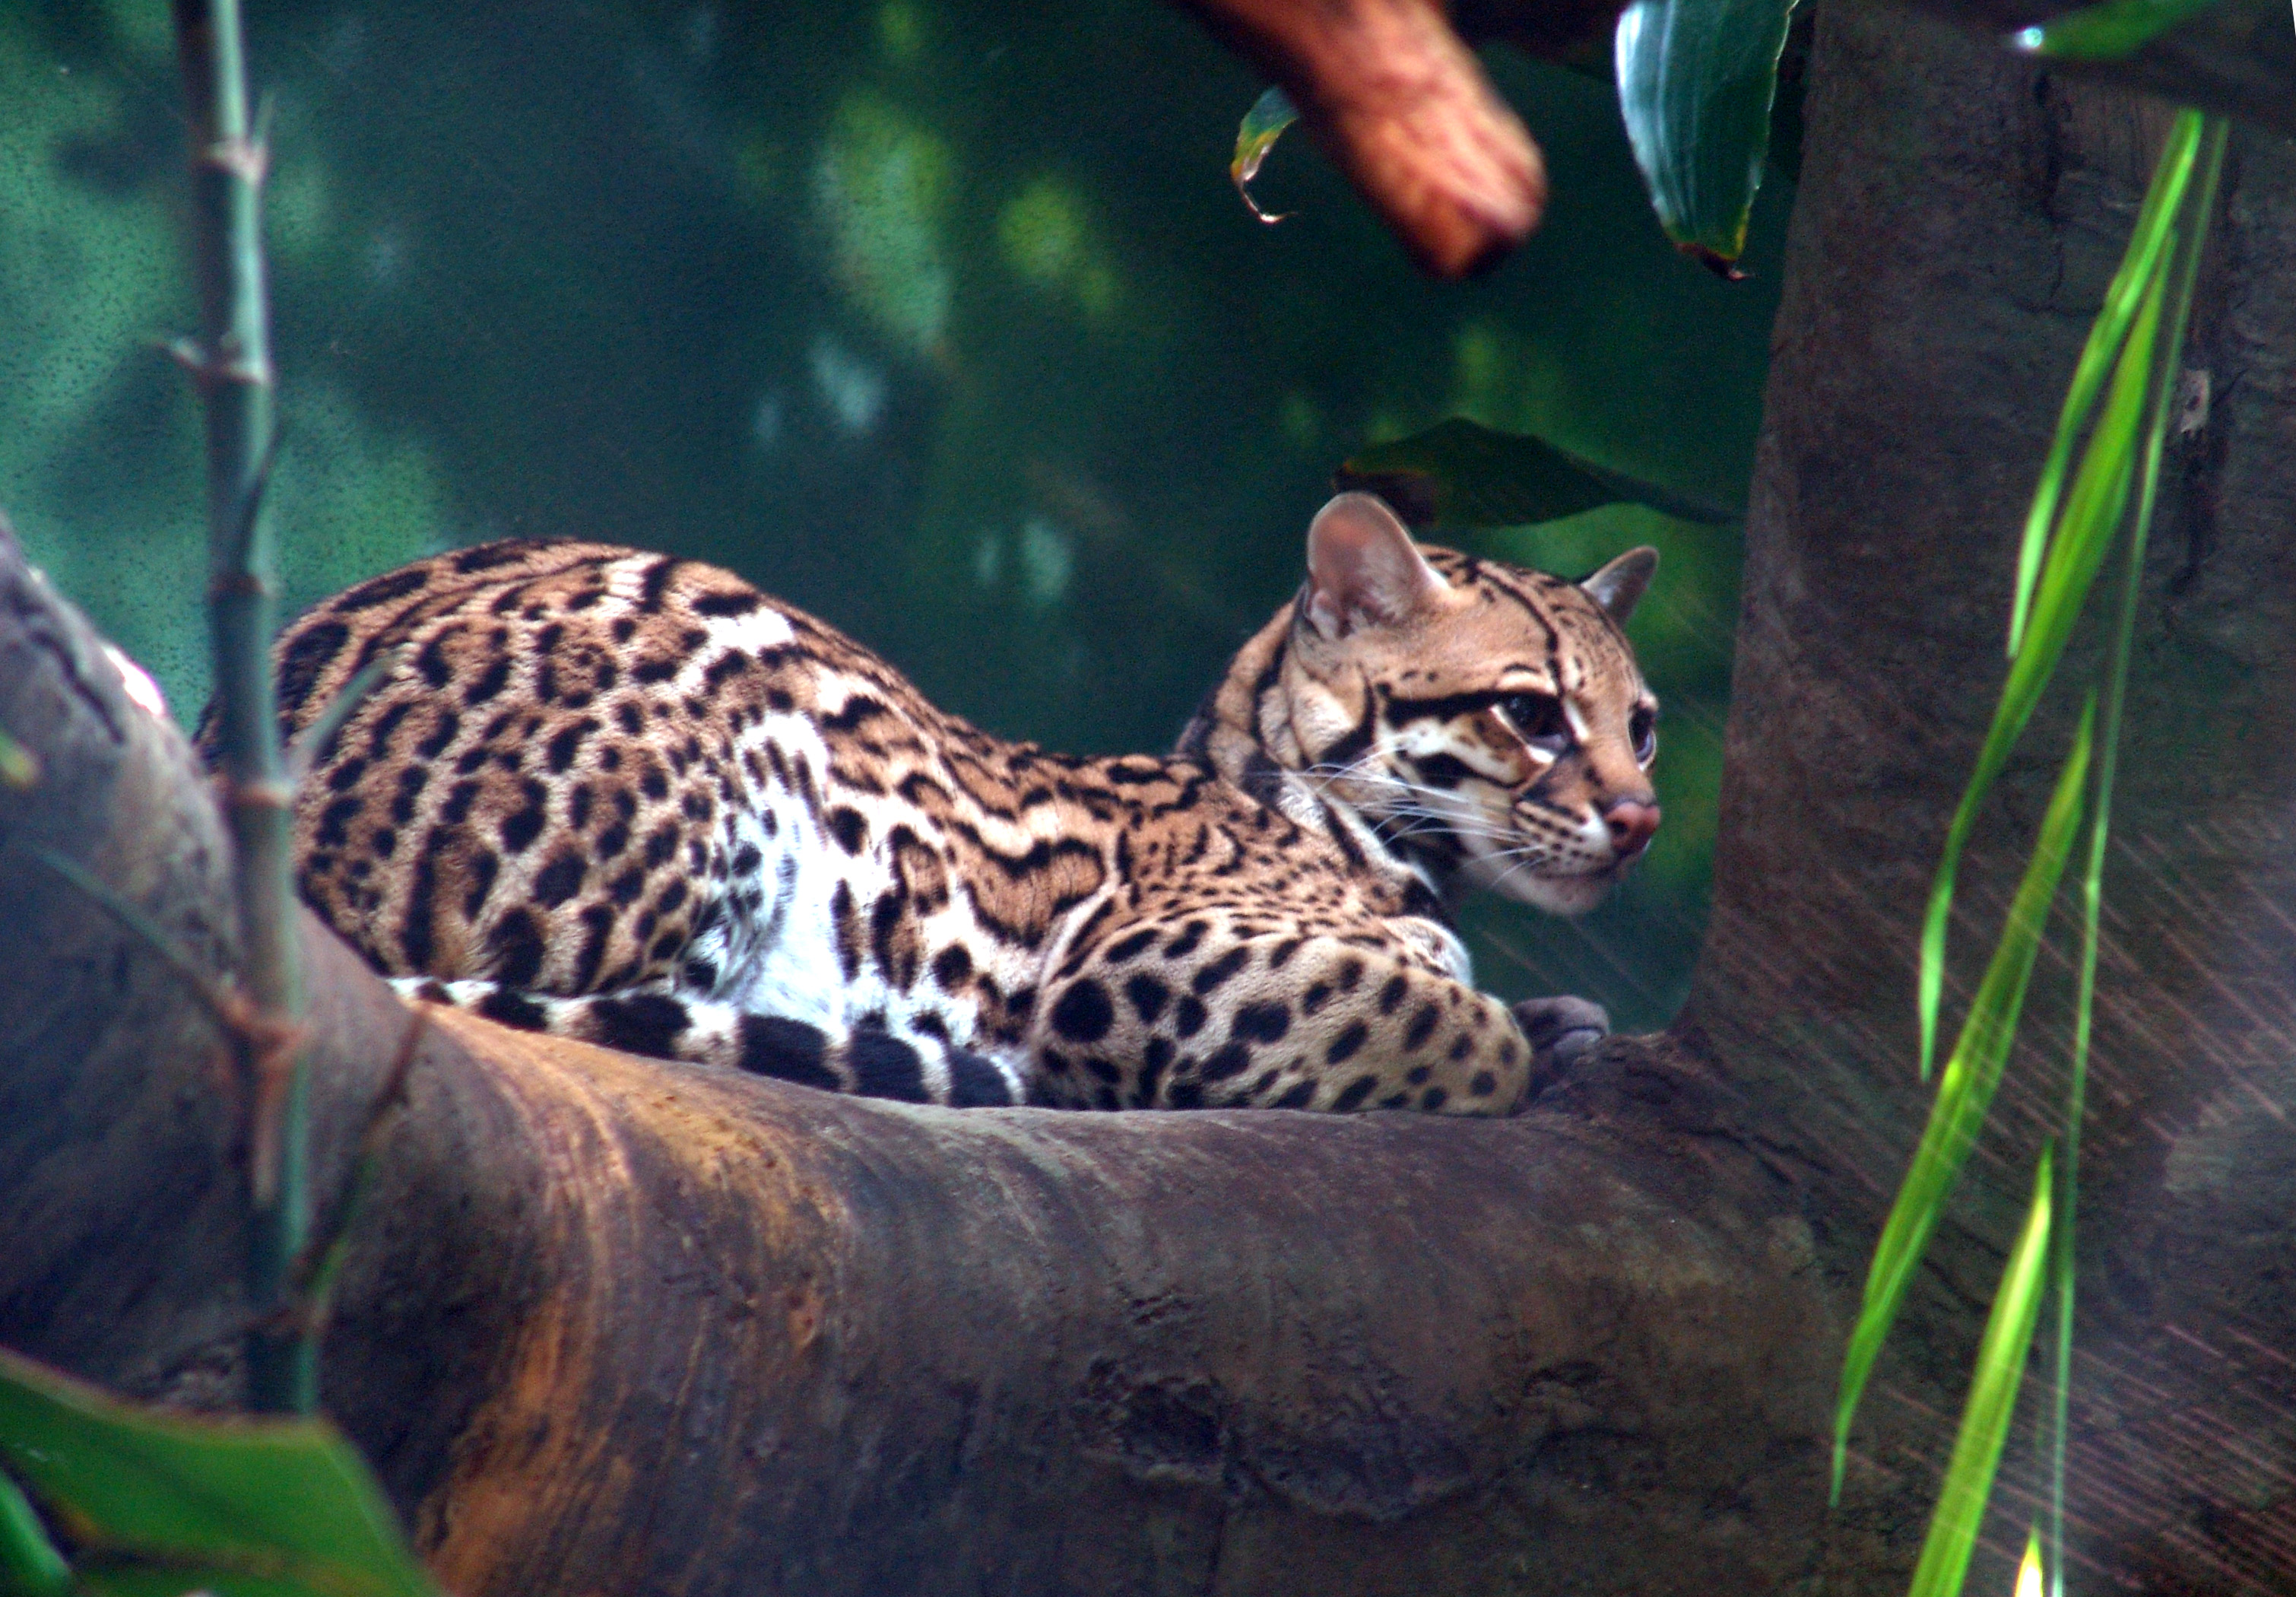 http://upload.wikimedia.org/wikipedia/commons/5/58/Ocelot_01.jpg